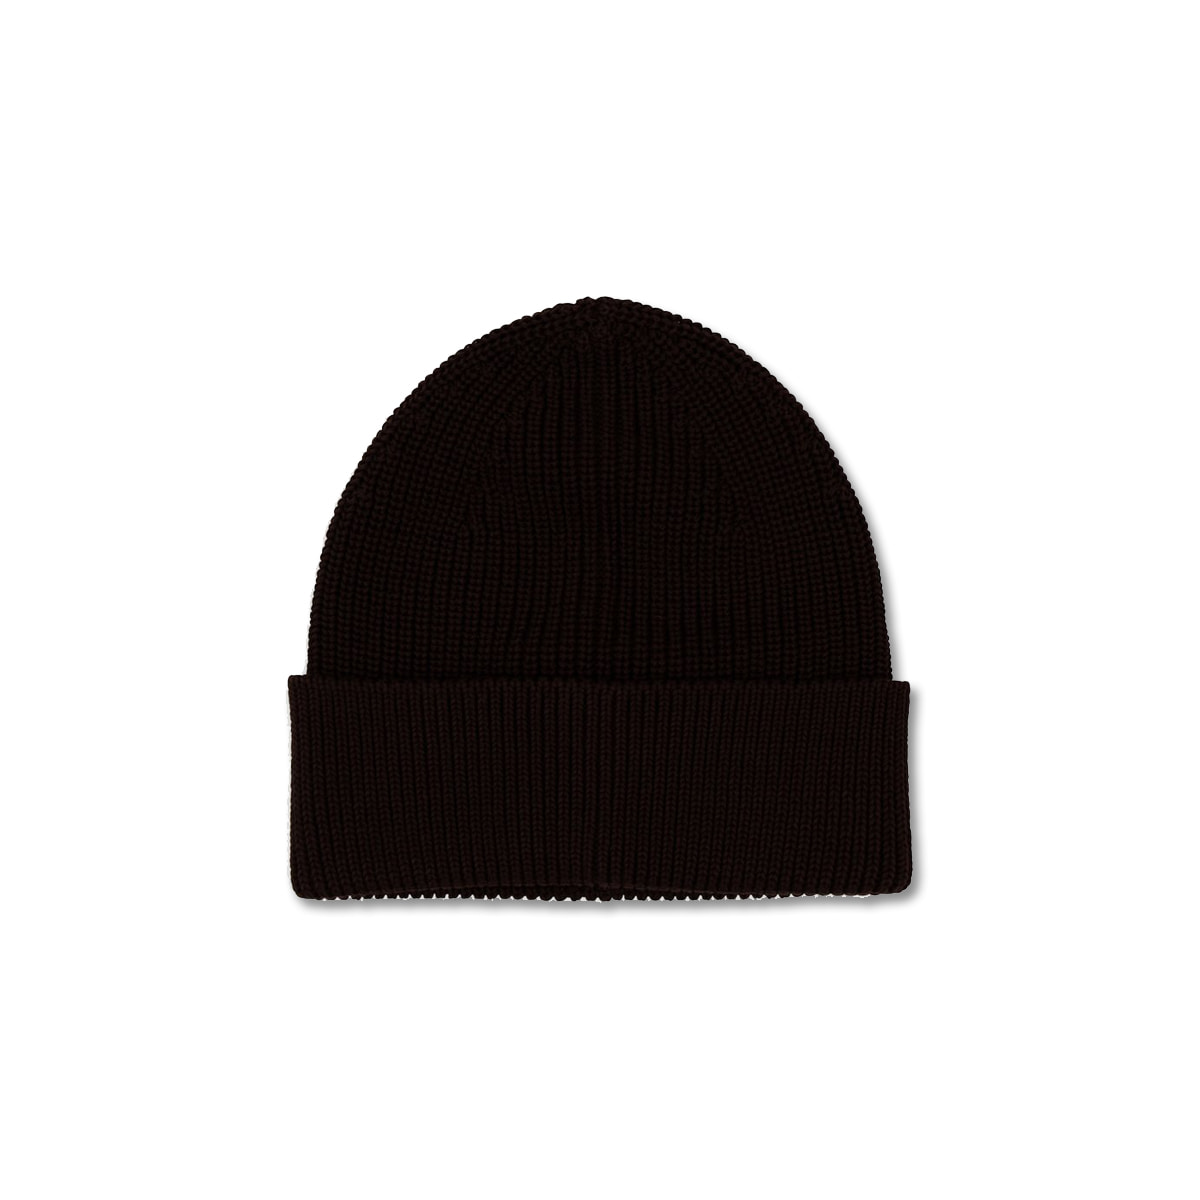 [ANDERSEN-ANDERSEN] COTTON CLASSIC BEANIE 'DARK BROWN'